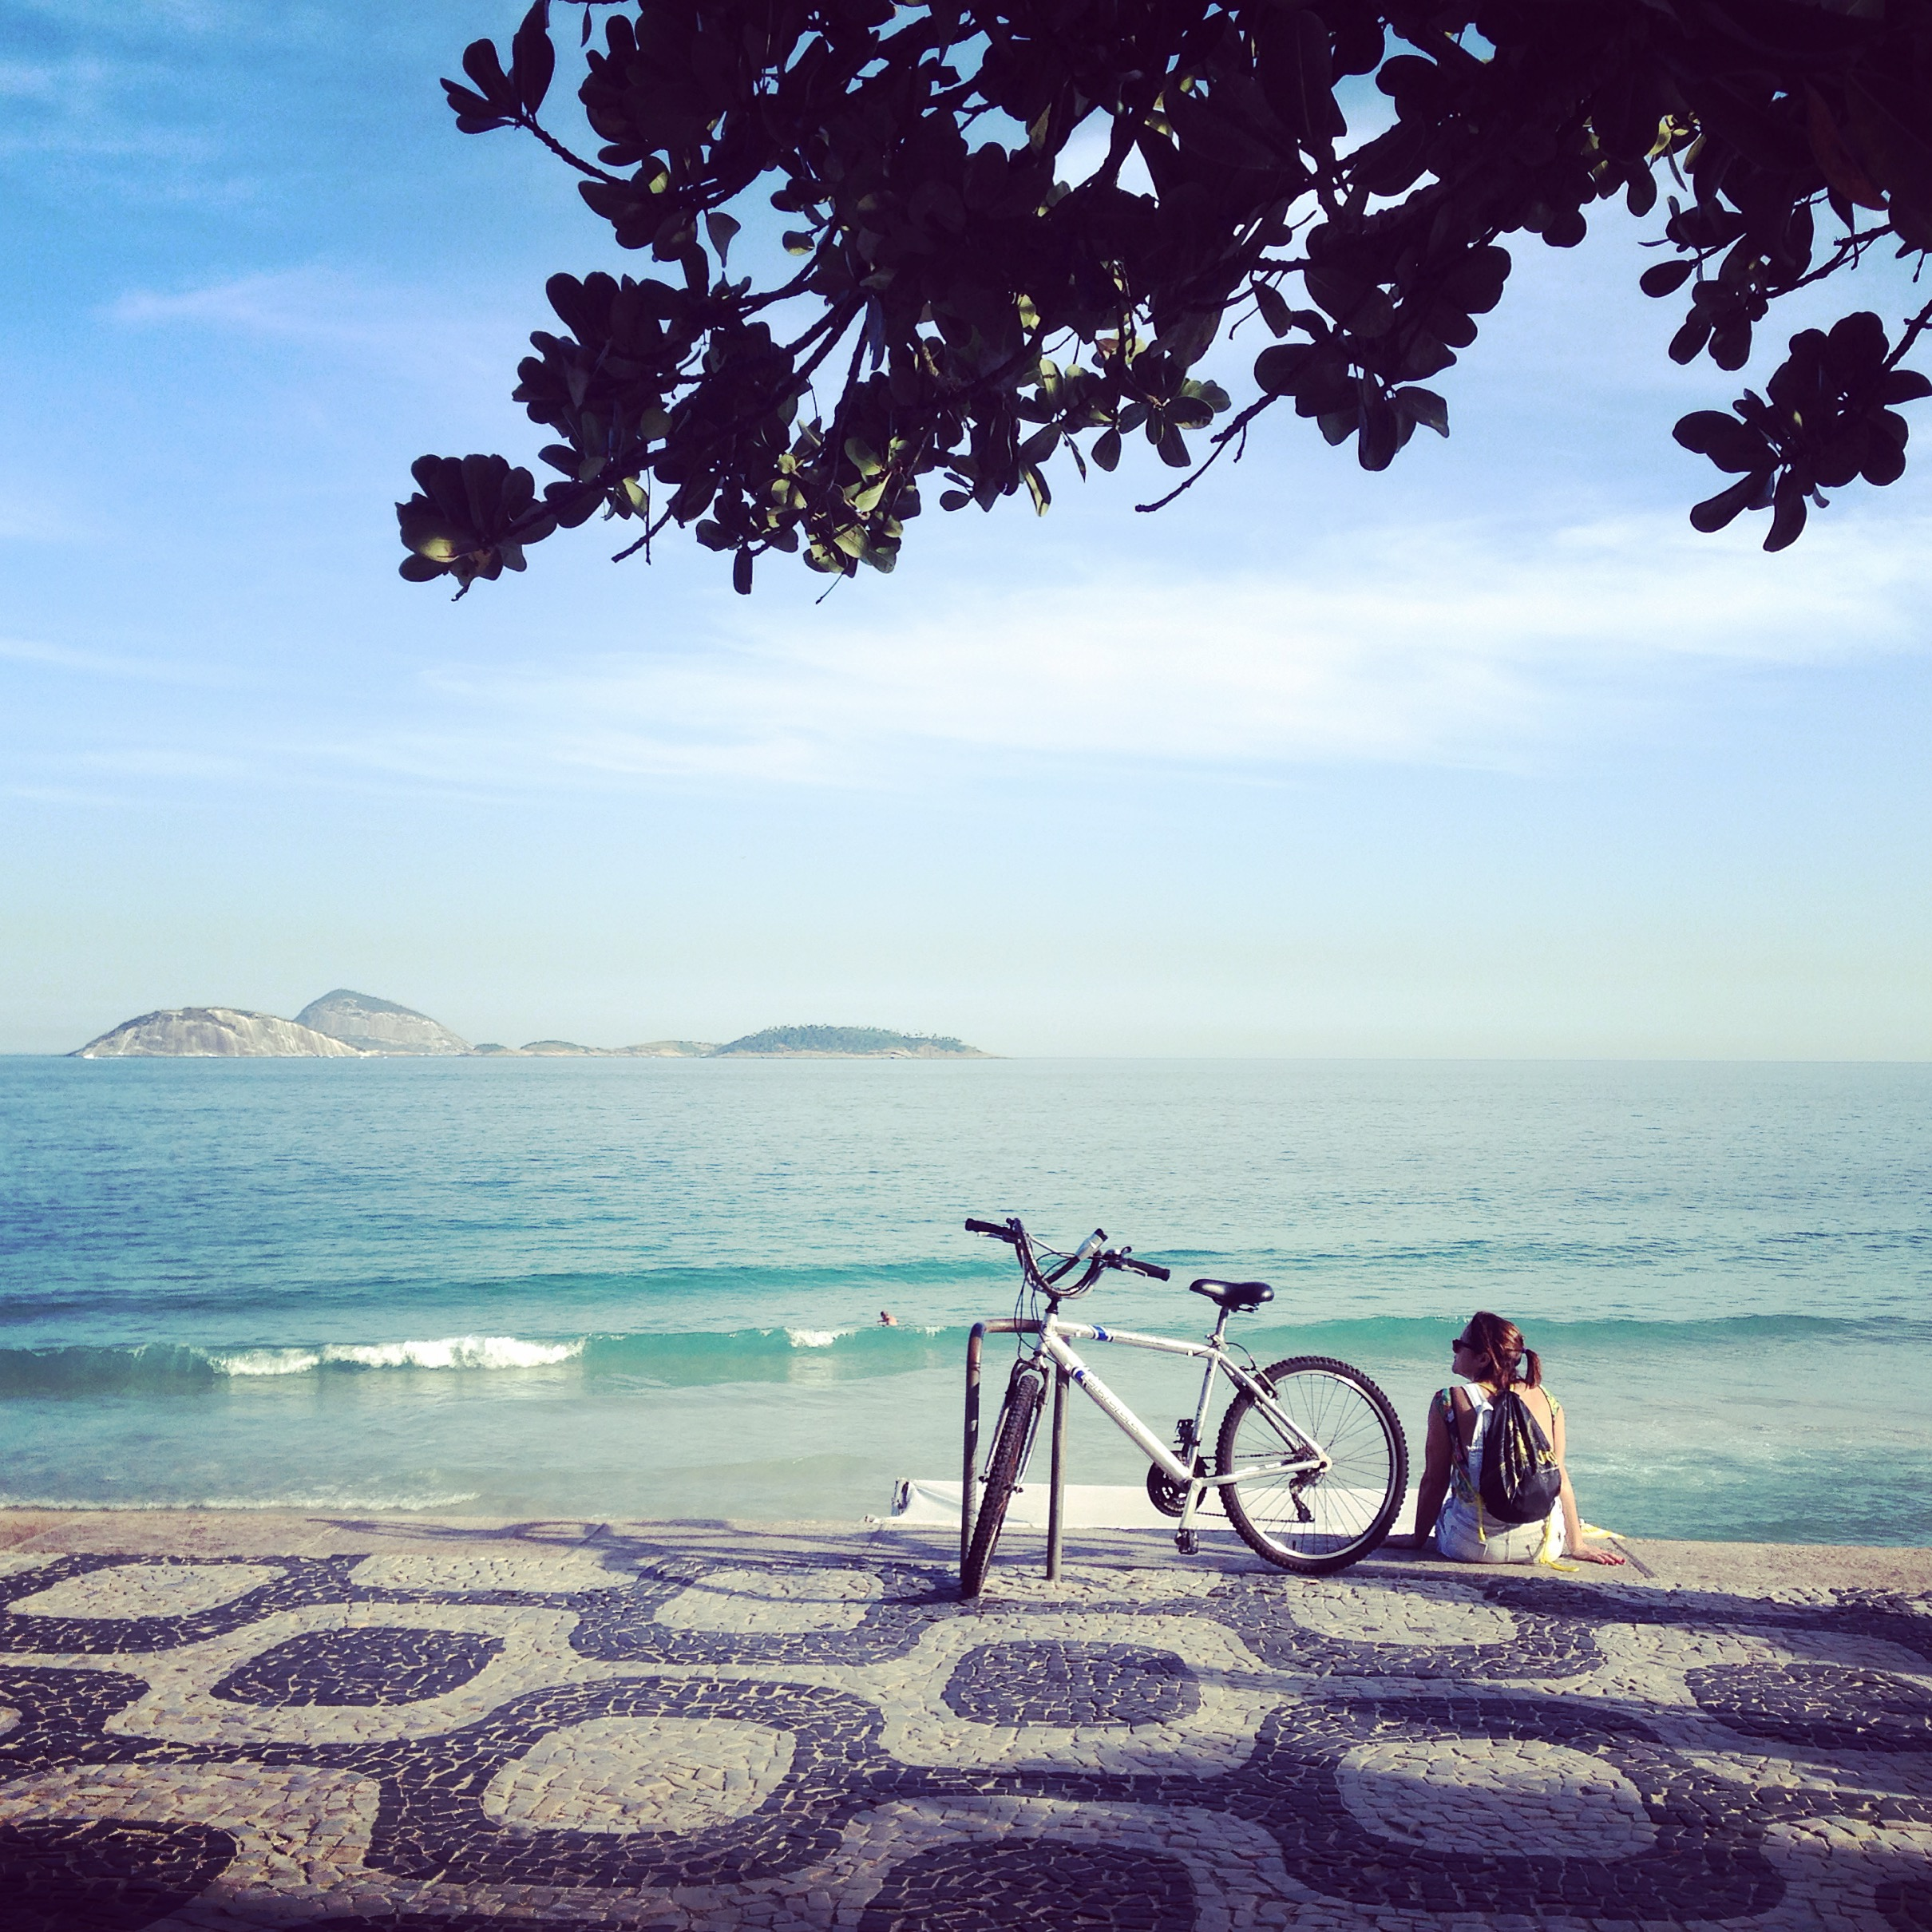 ciclistaipanema_TalitaChaves